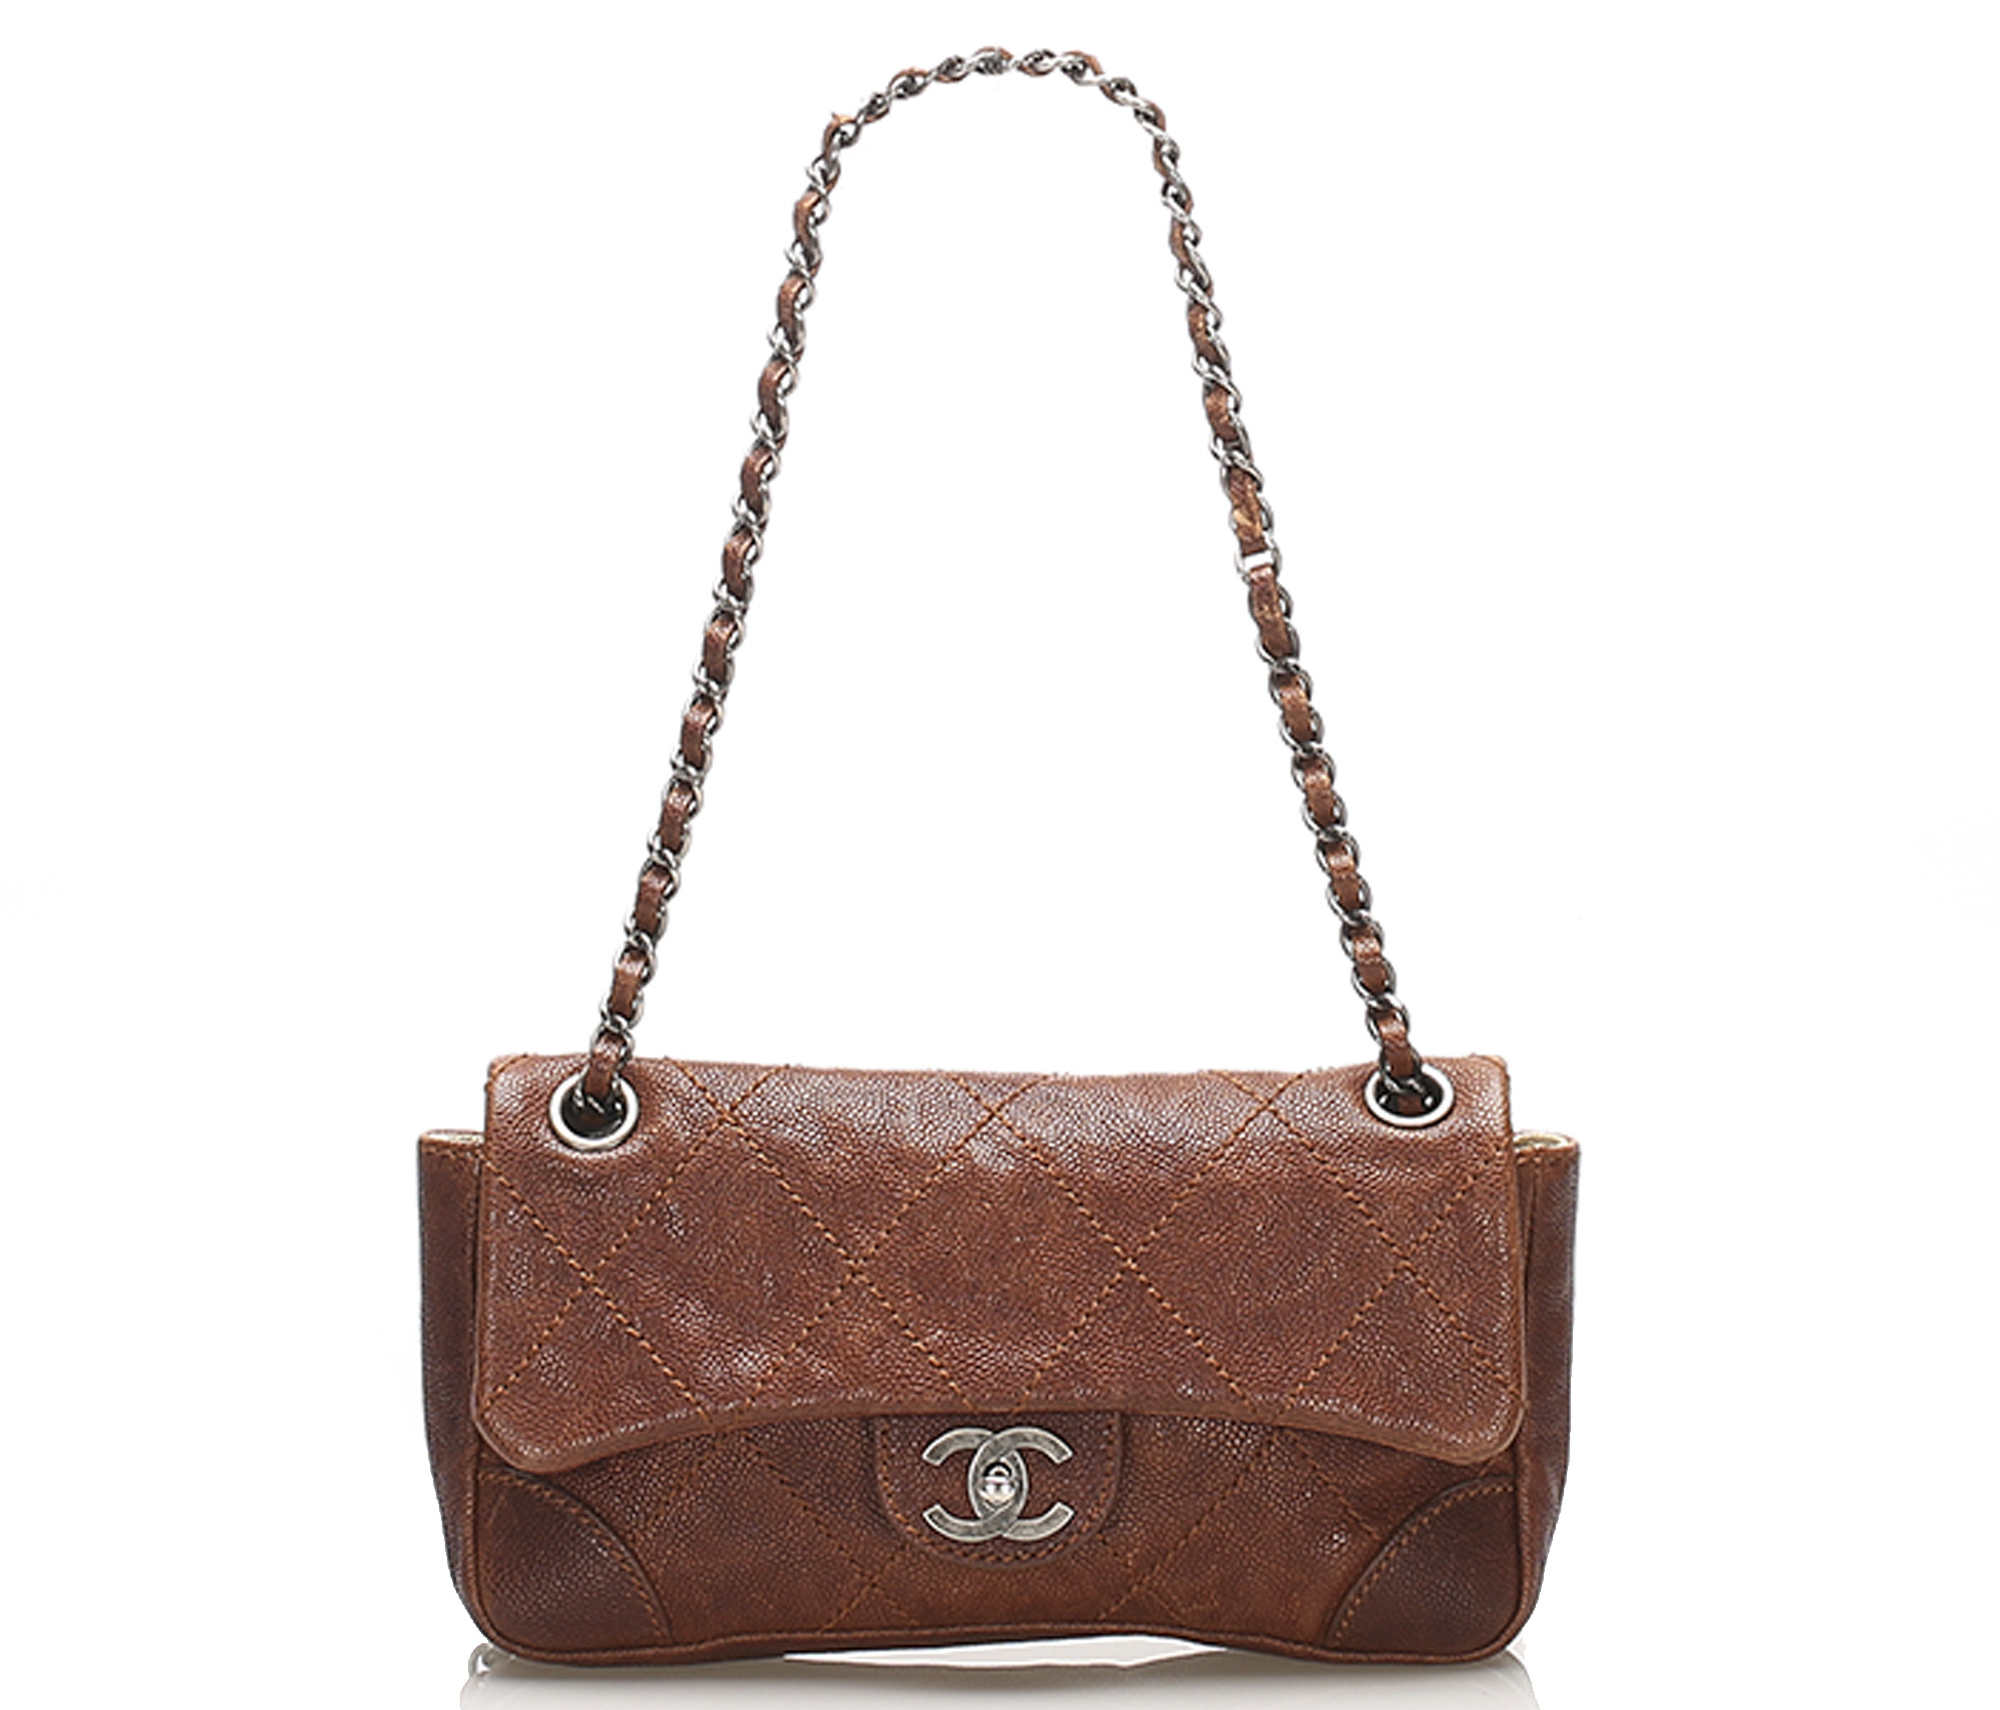 Chanel Caviar Leather Wild Stitch Single Flap